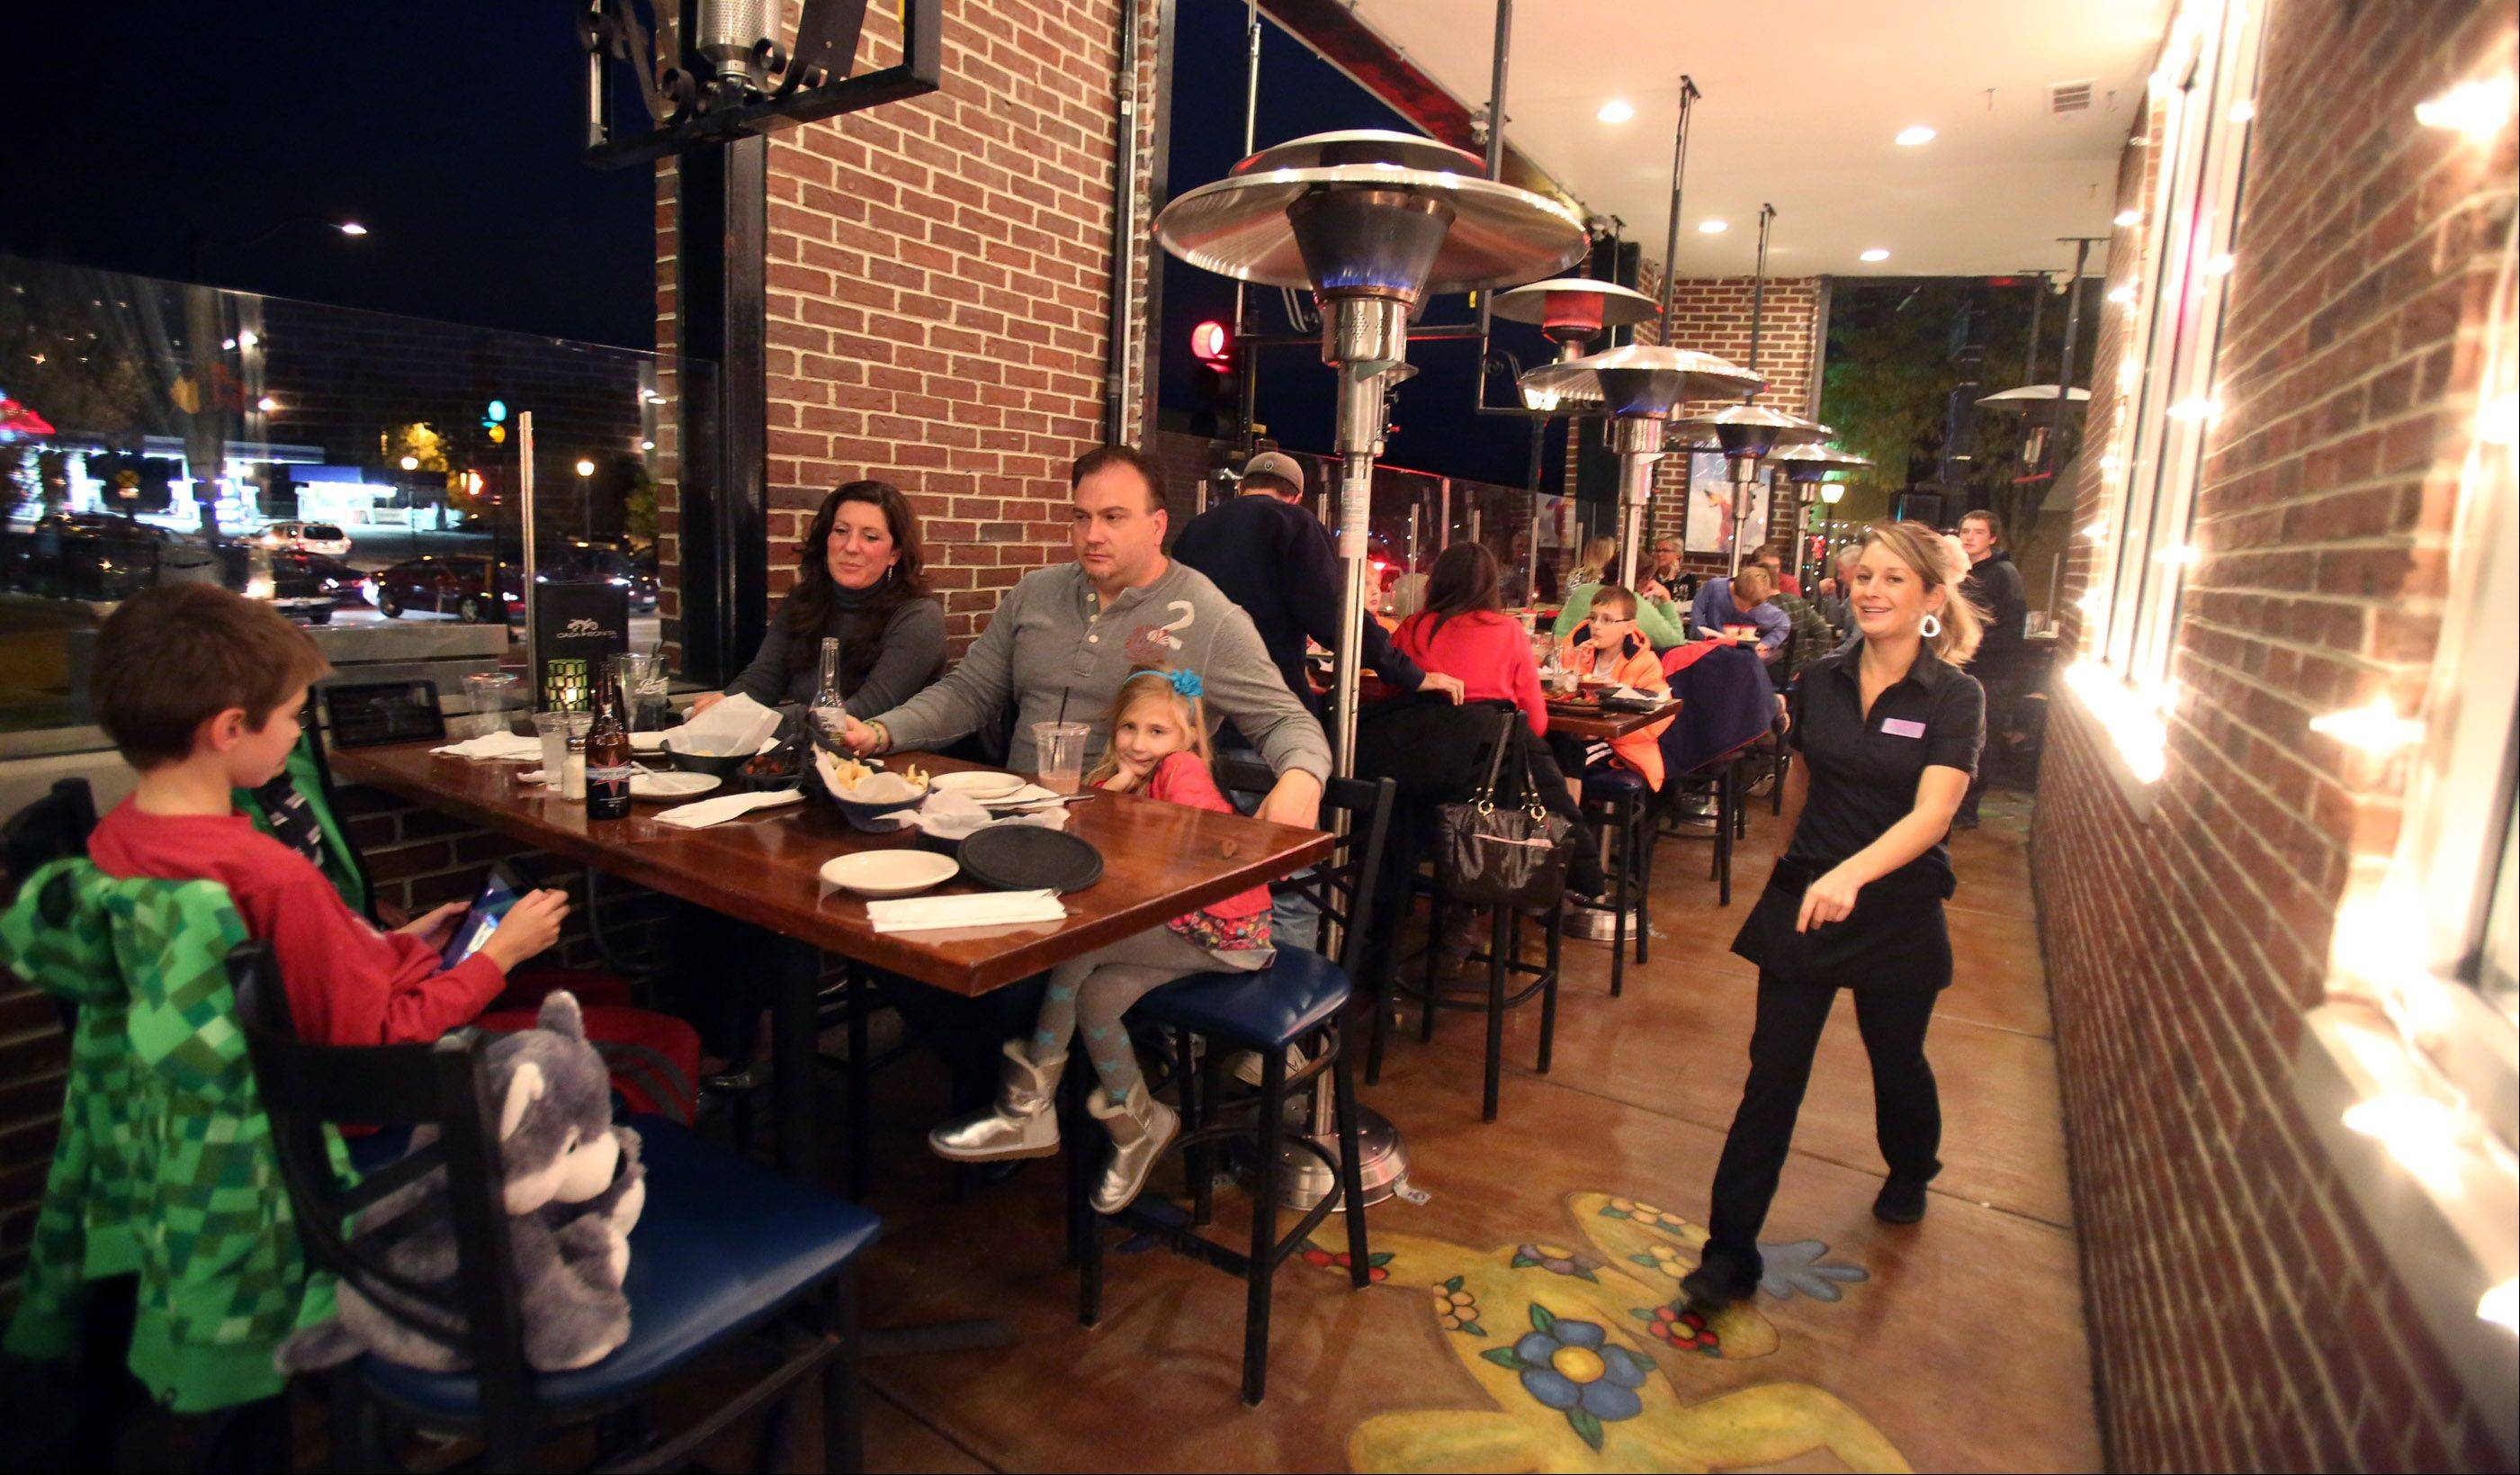 Heat lamps keep the outdoor patio at Libertyville's Casa Bonita Mexican Restaurant and Tequila Bar busy all year.